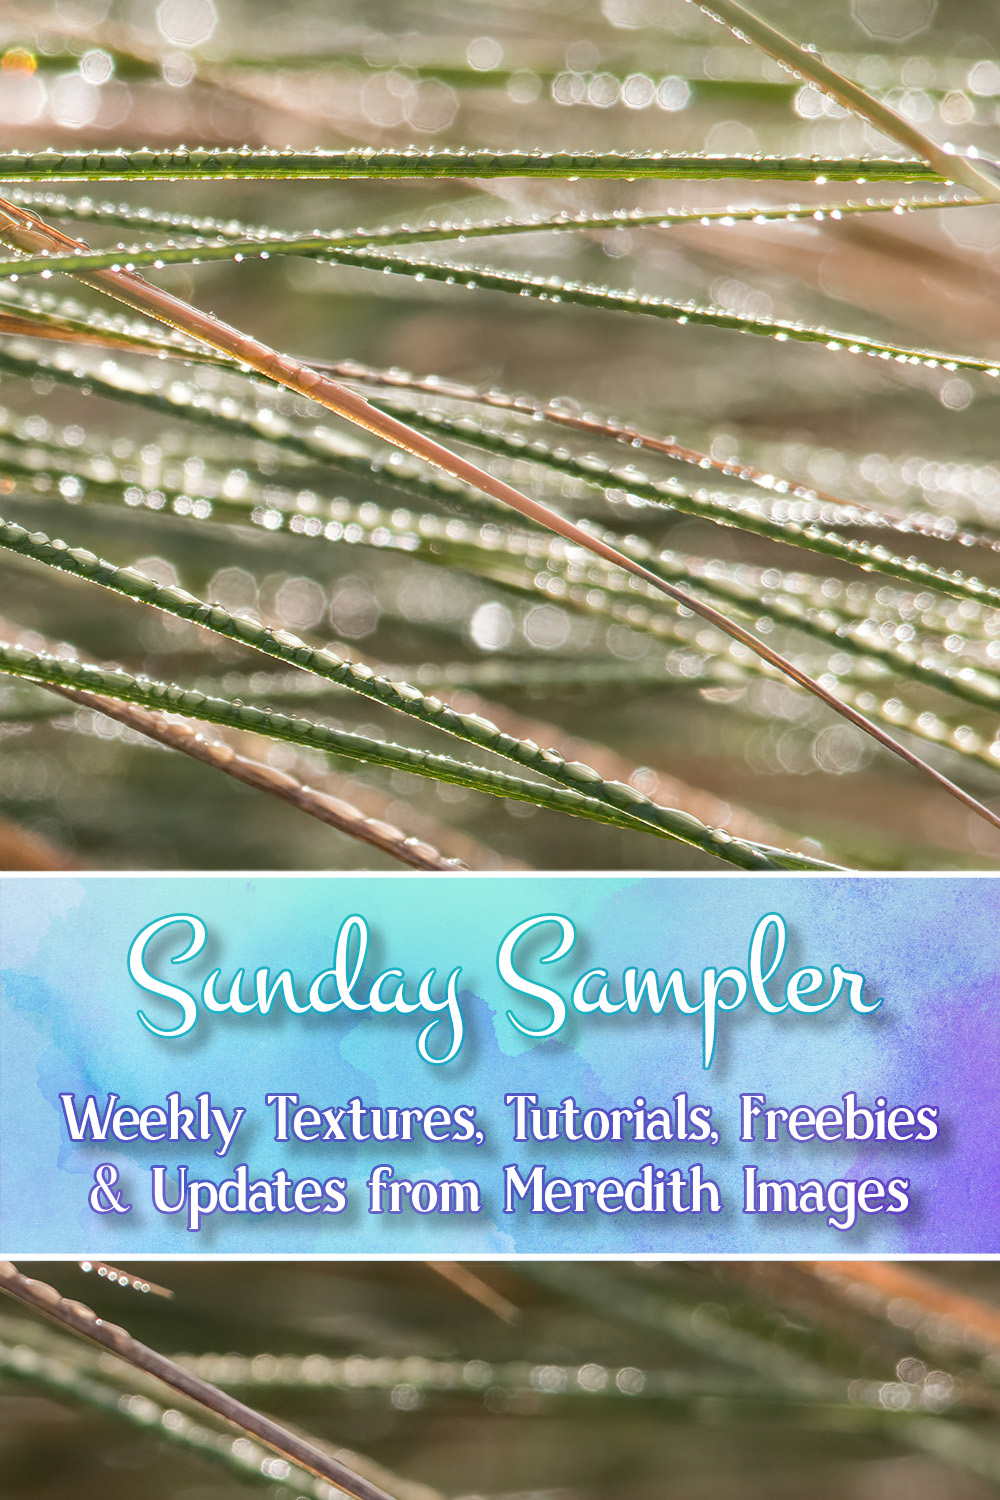 Feb. 17 – Sunday Sampler